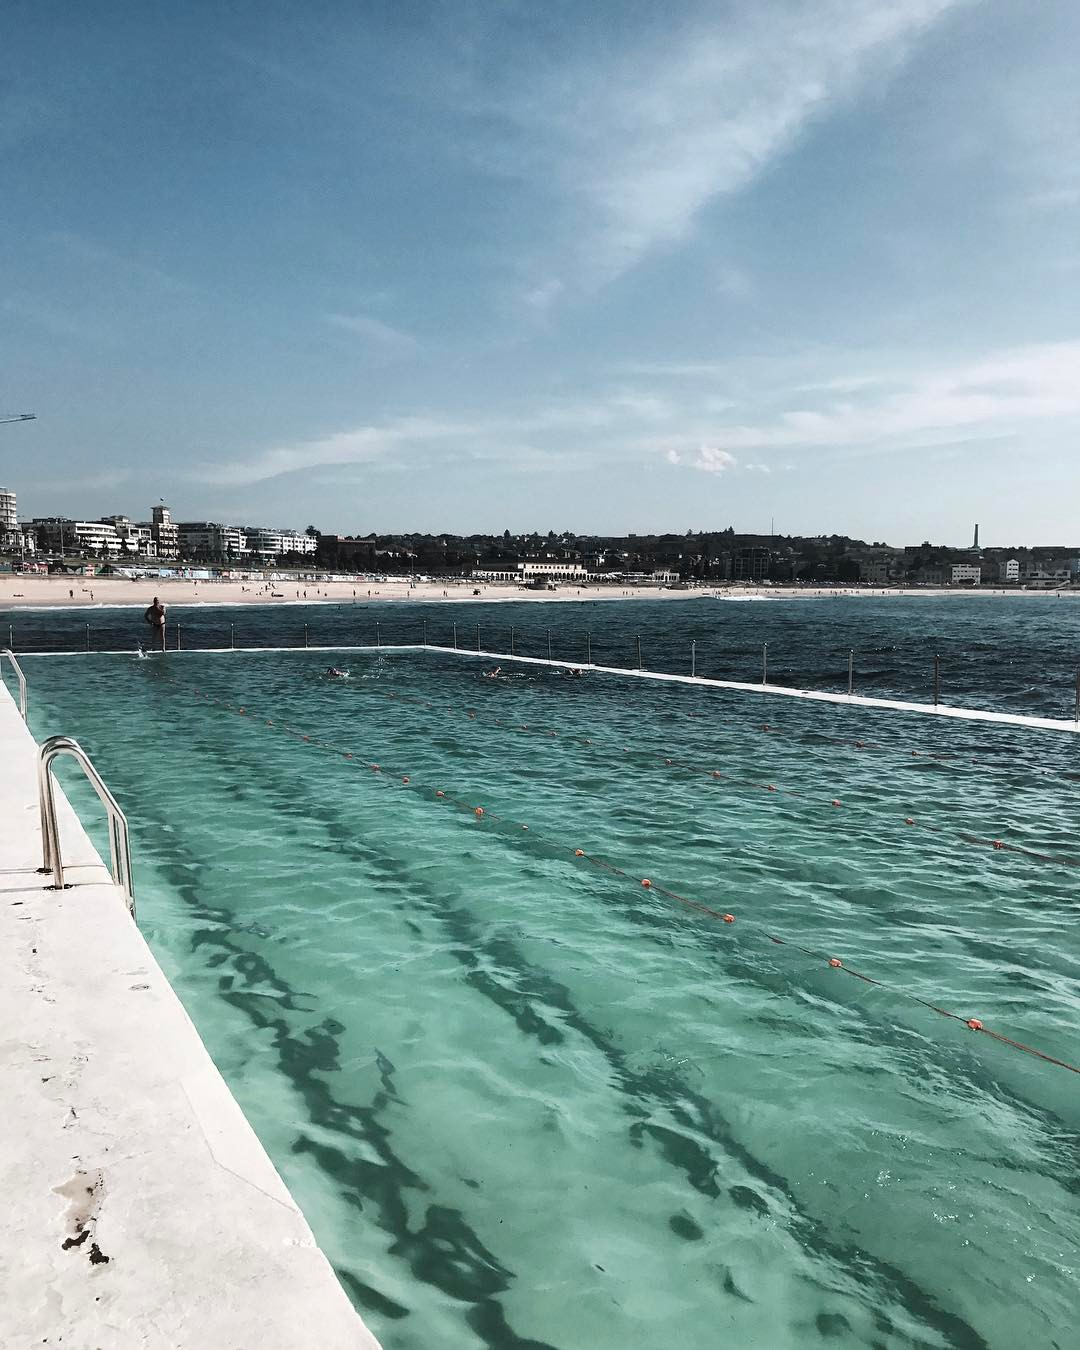 A view of Bondi Beach from the Iceberg's lap pool, May 2017